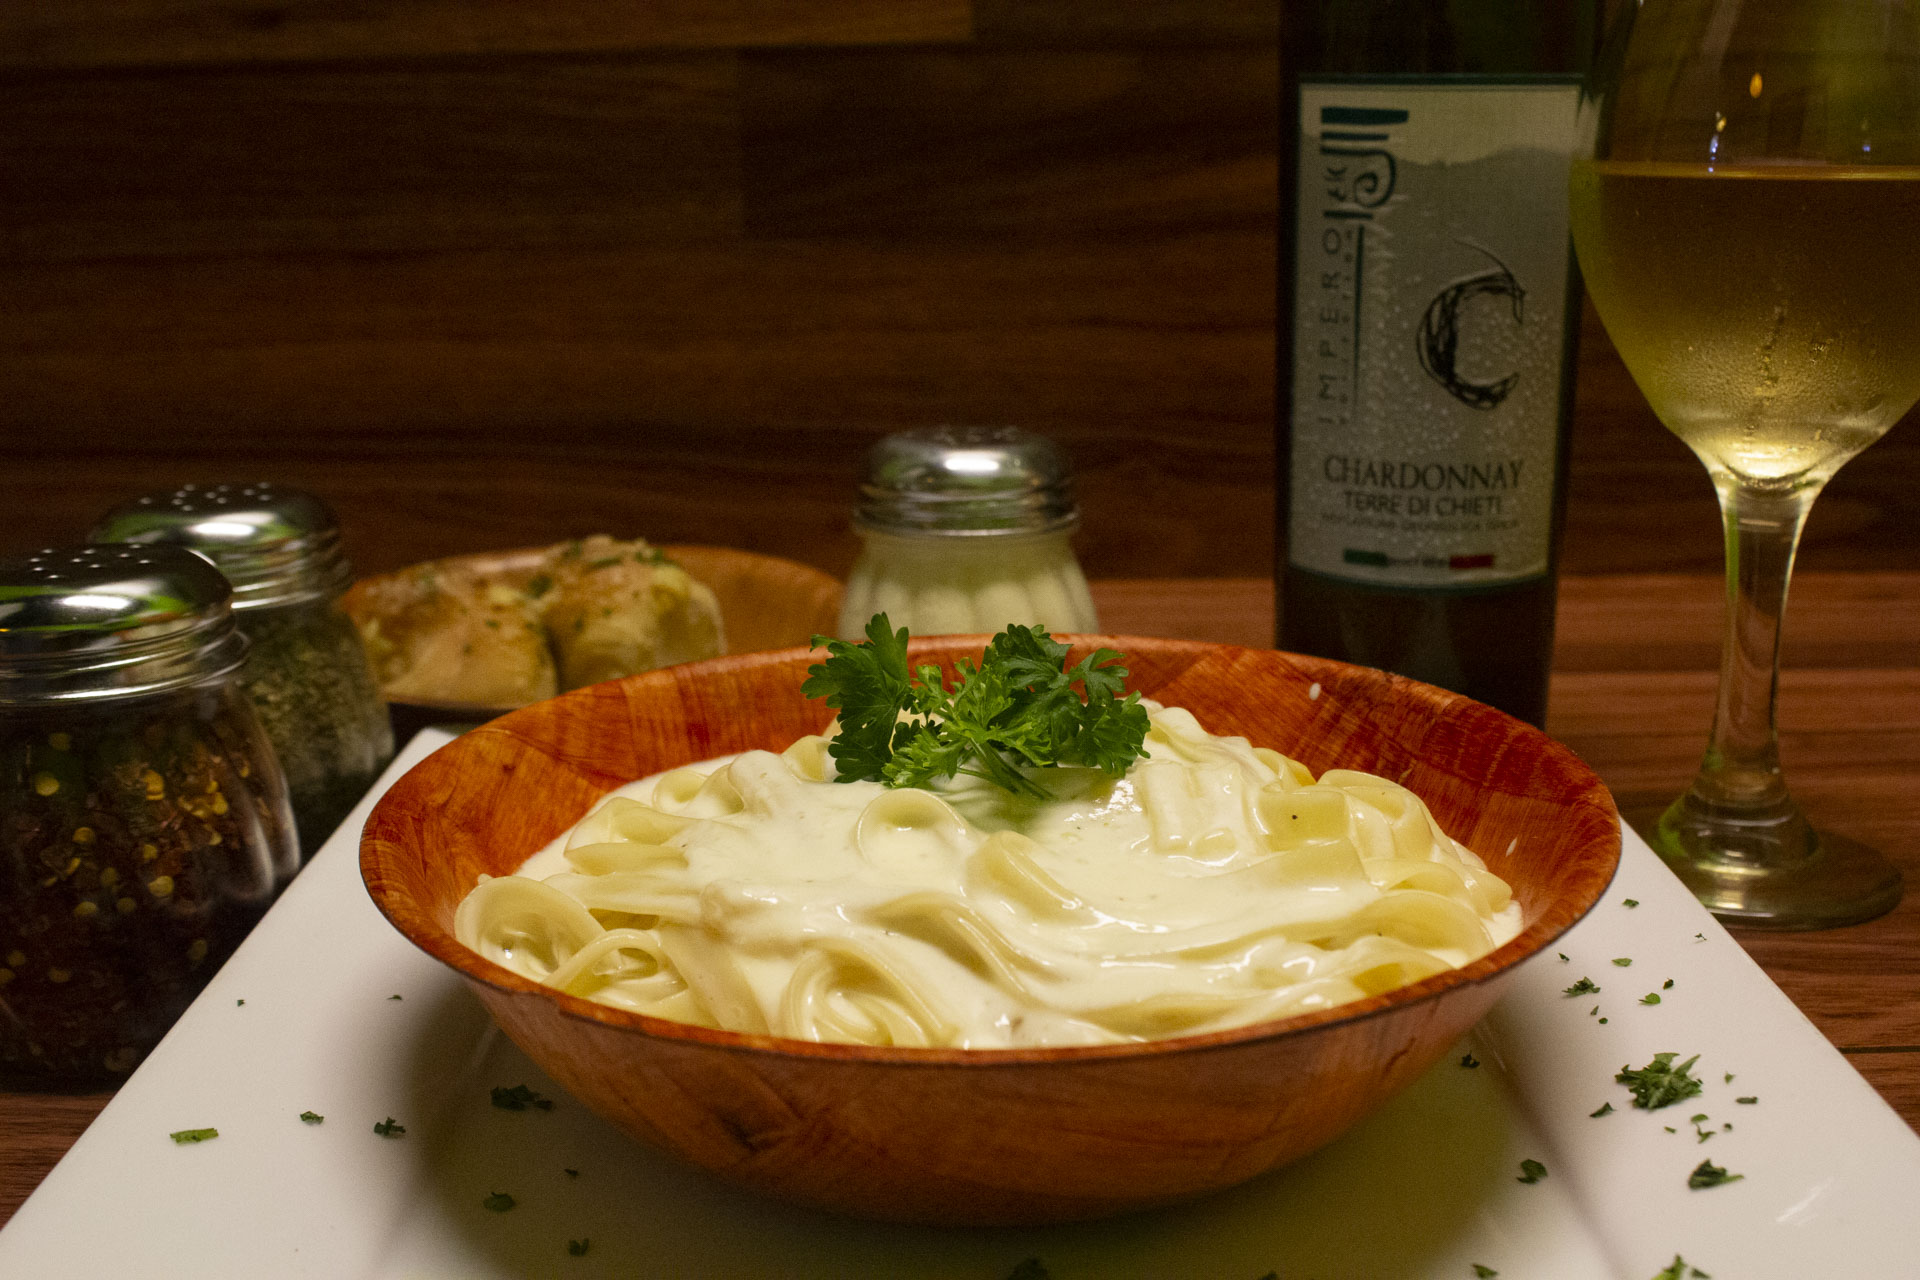 Fettuccini alfredo pasta in a bowl with a bowl of garlic knots and a bottle and glass of white wine